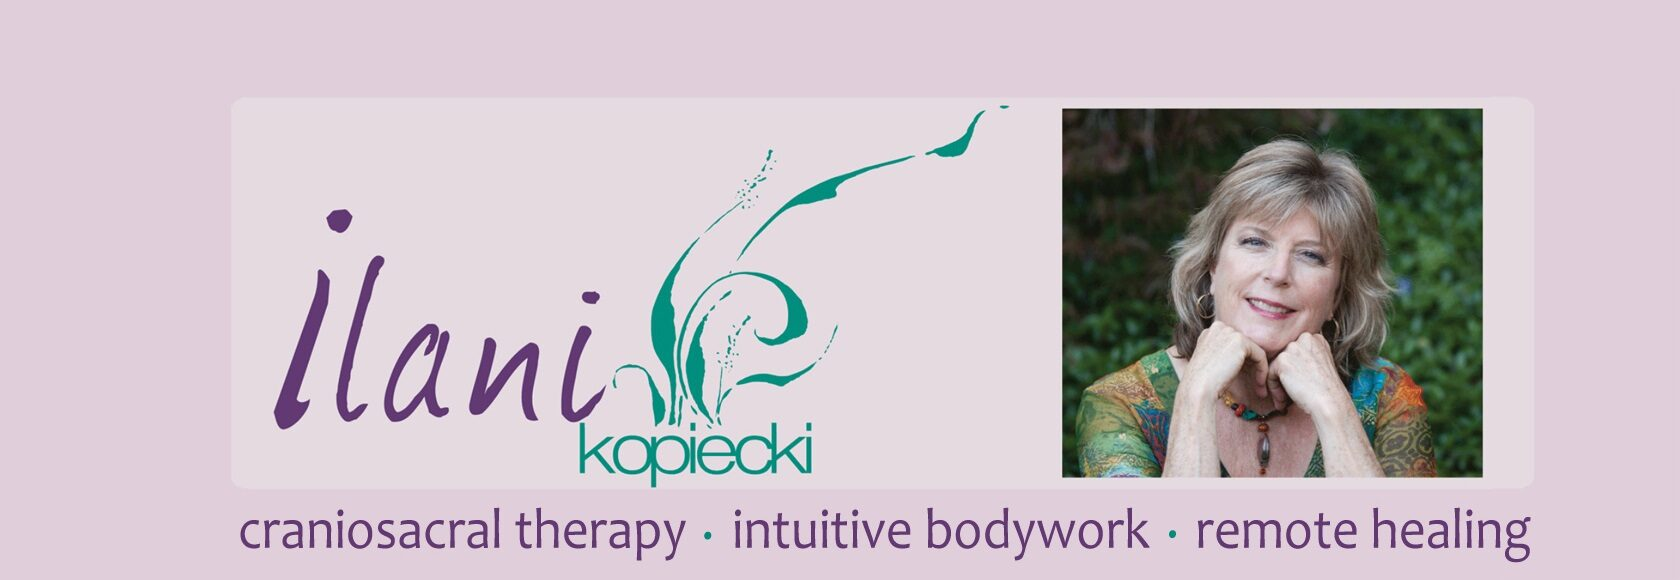 Ilani Kopiecki | Integrated Bodywork